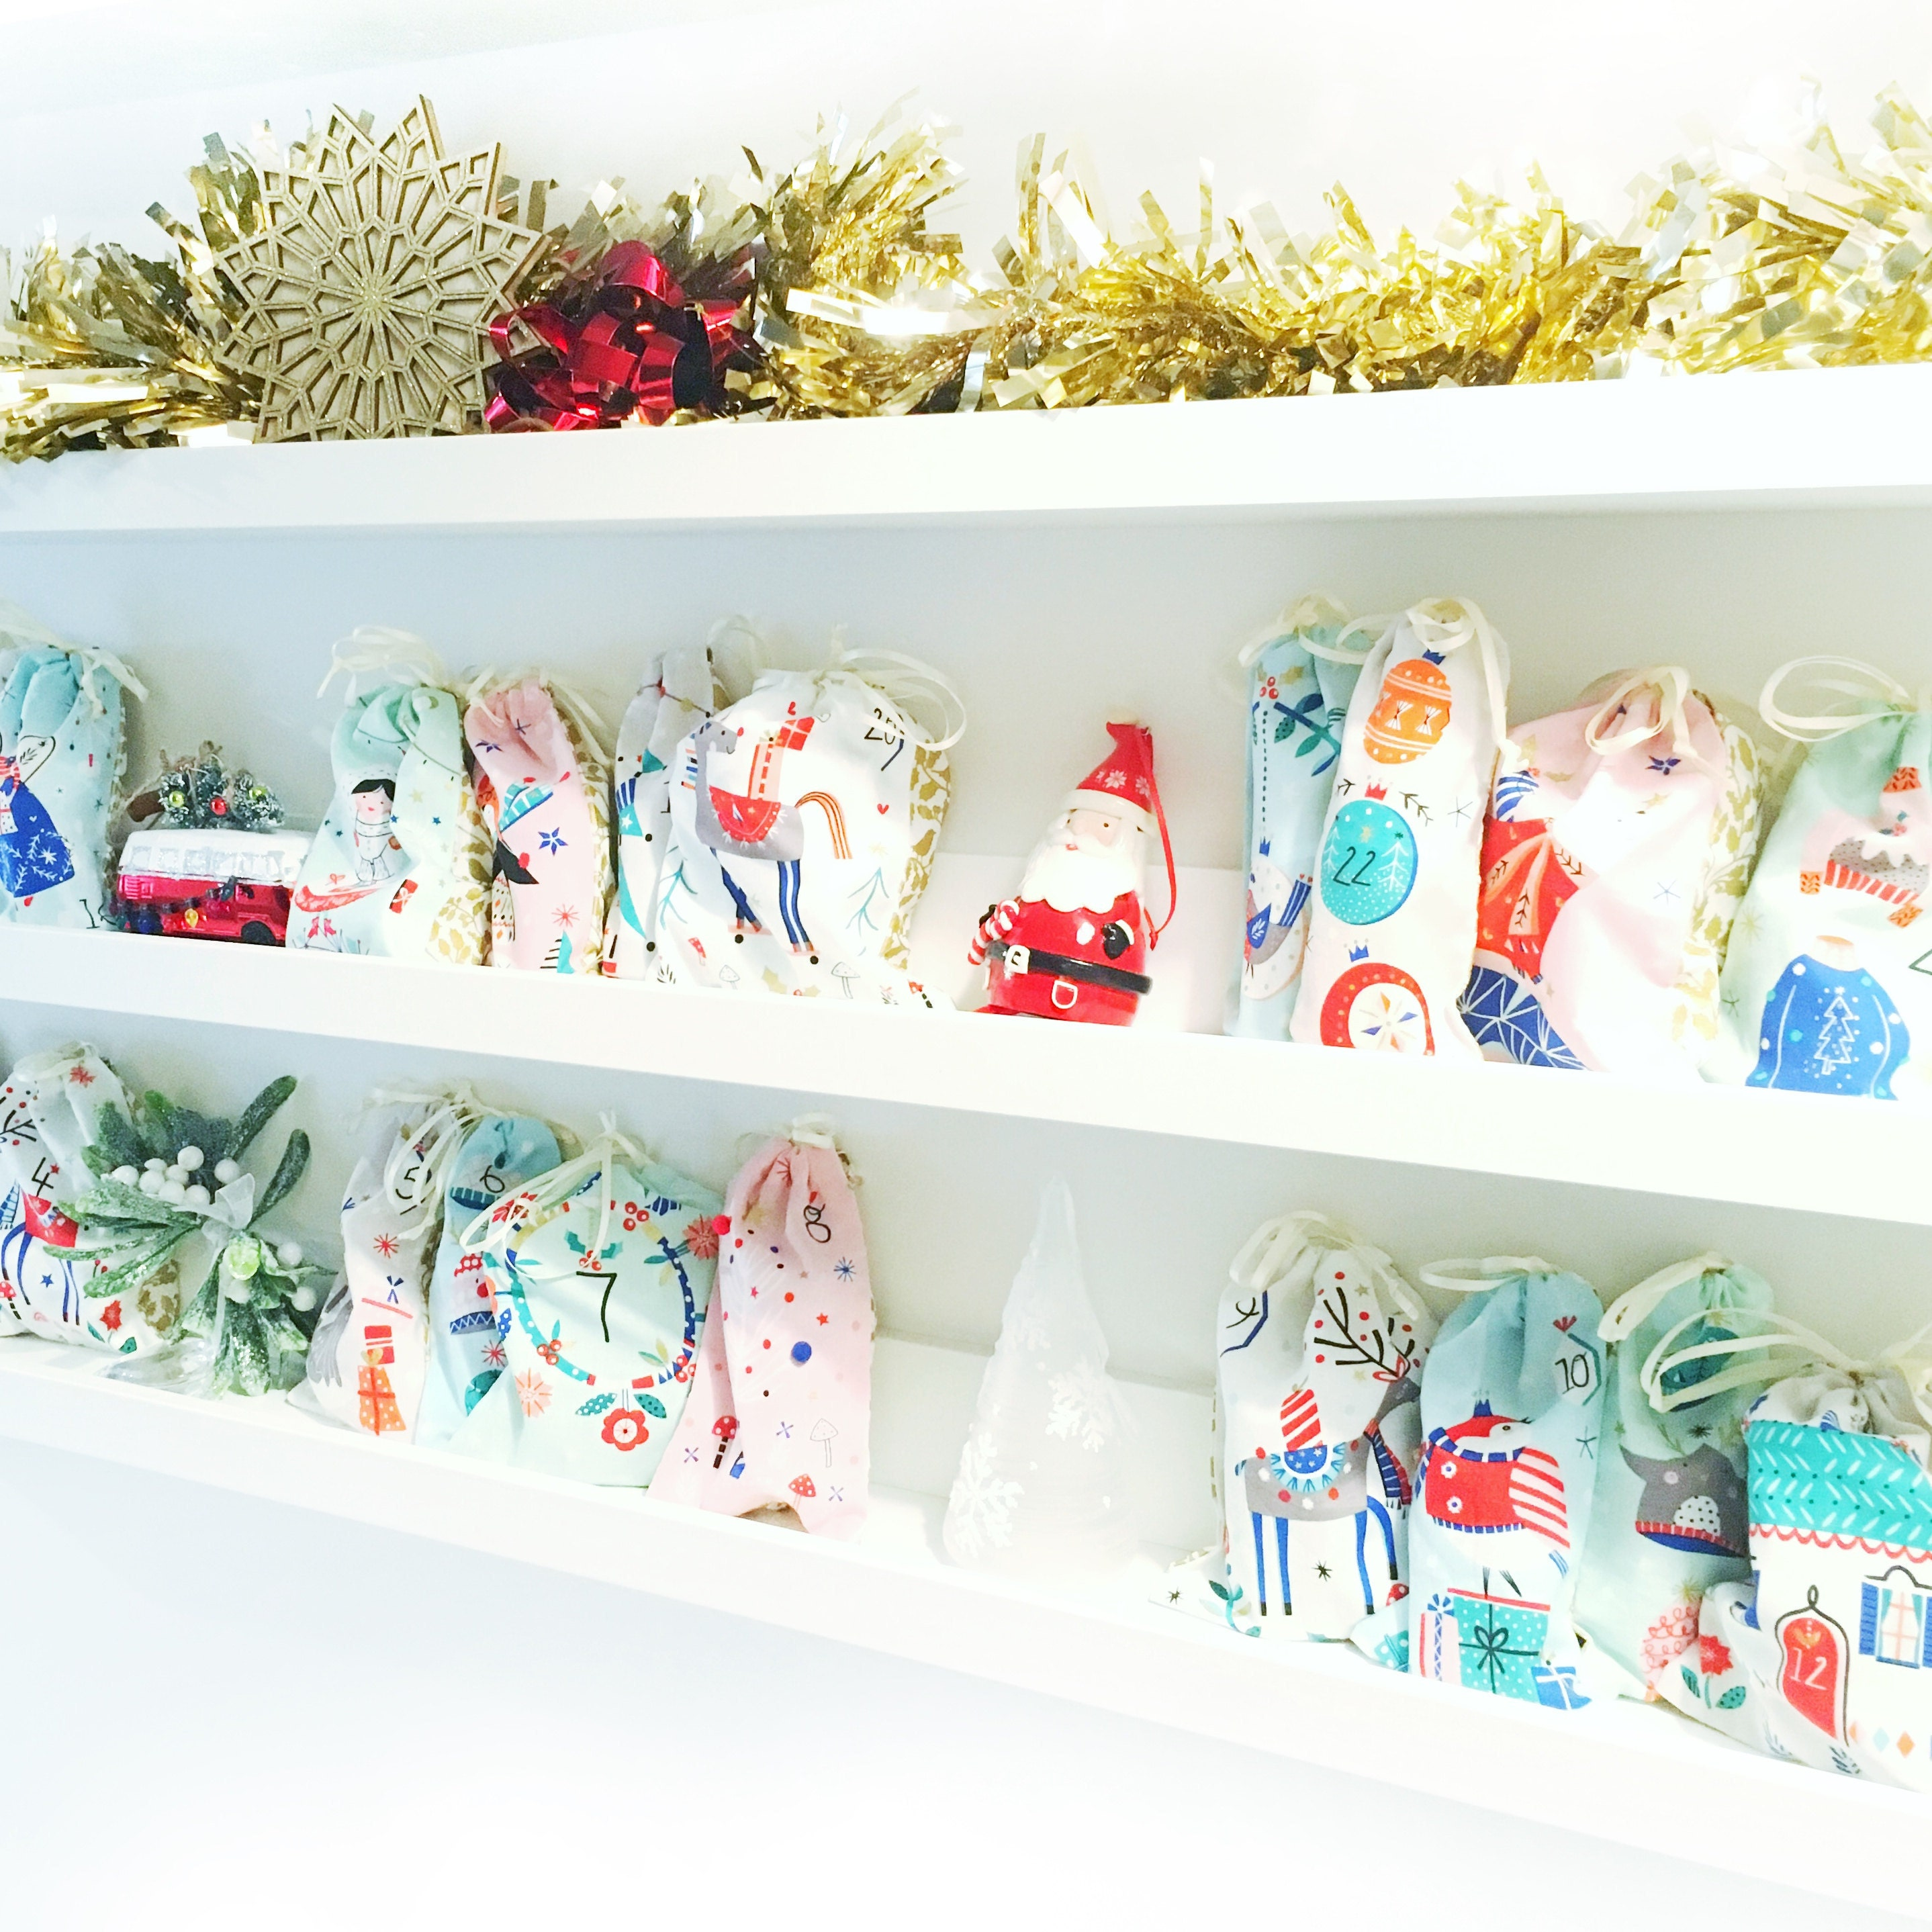 CHRISTMAS ADVENT CALENDAR FABRIC IDEAS